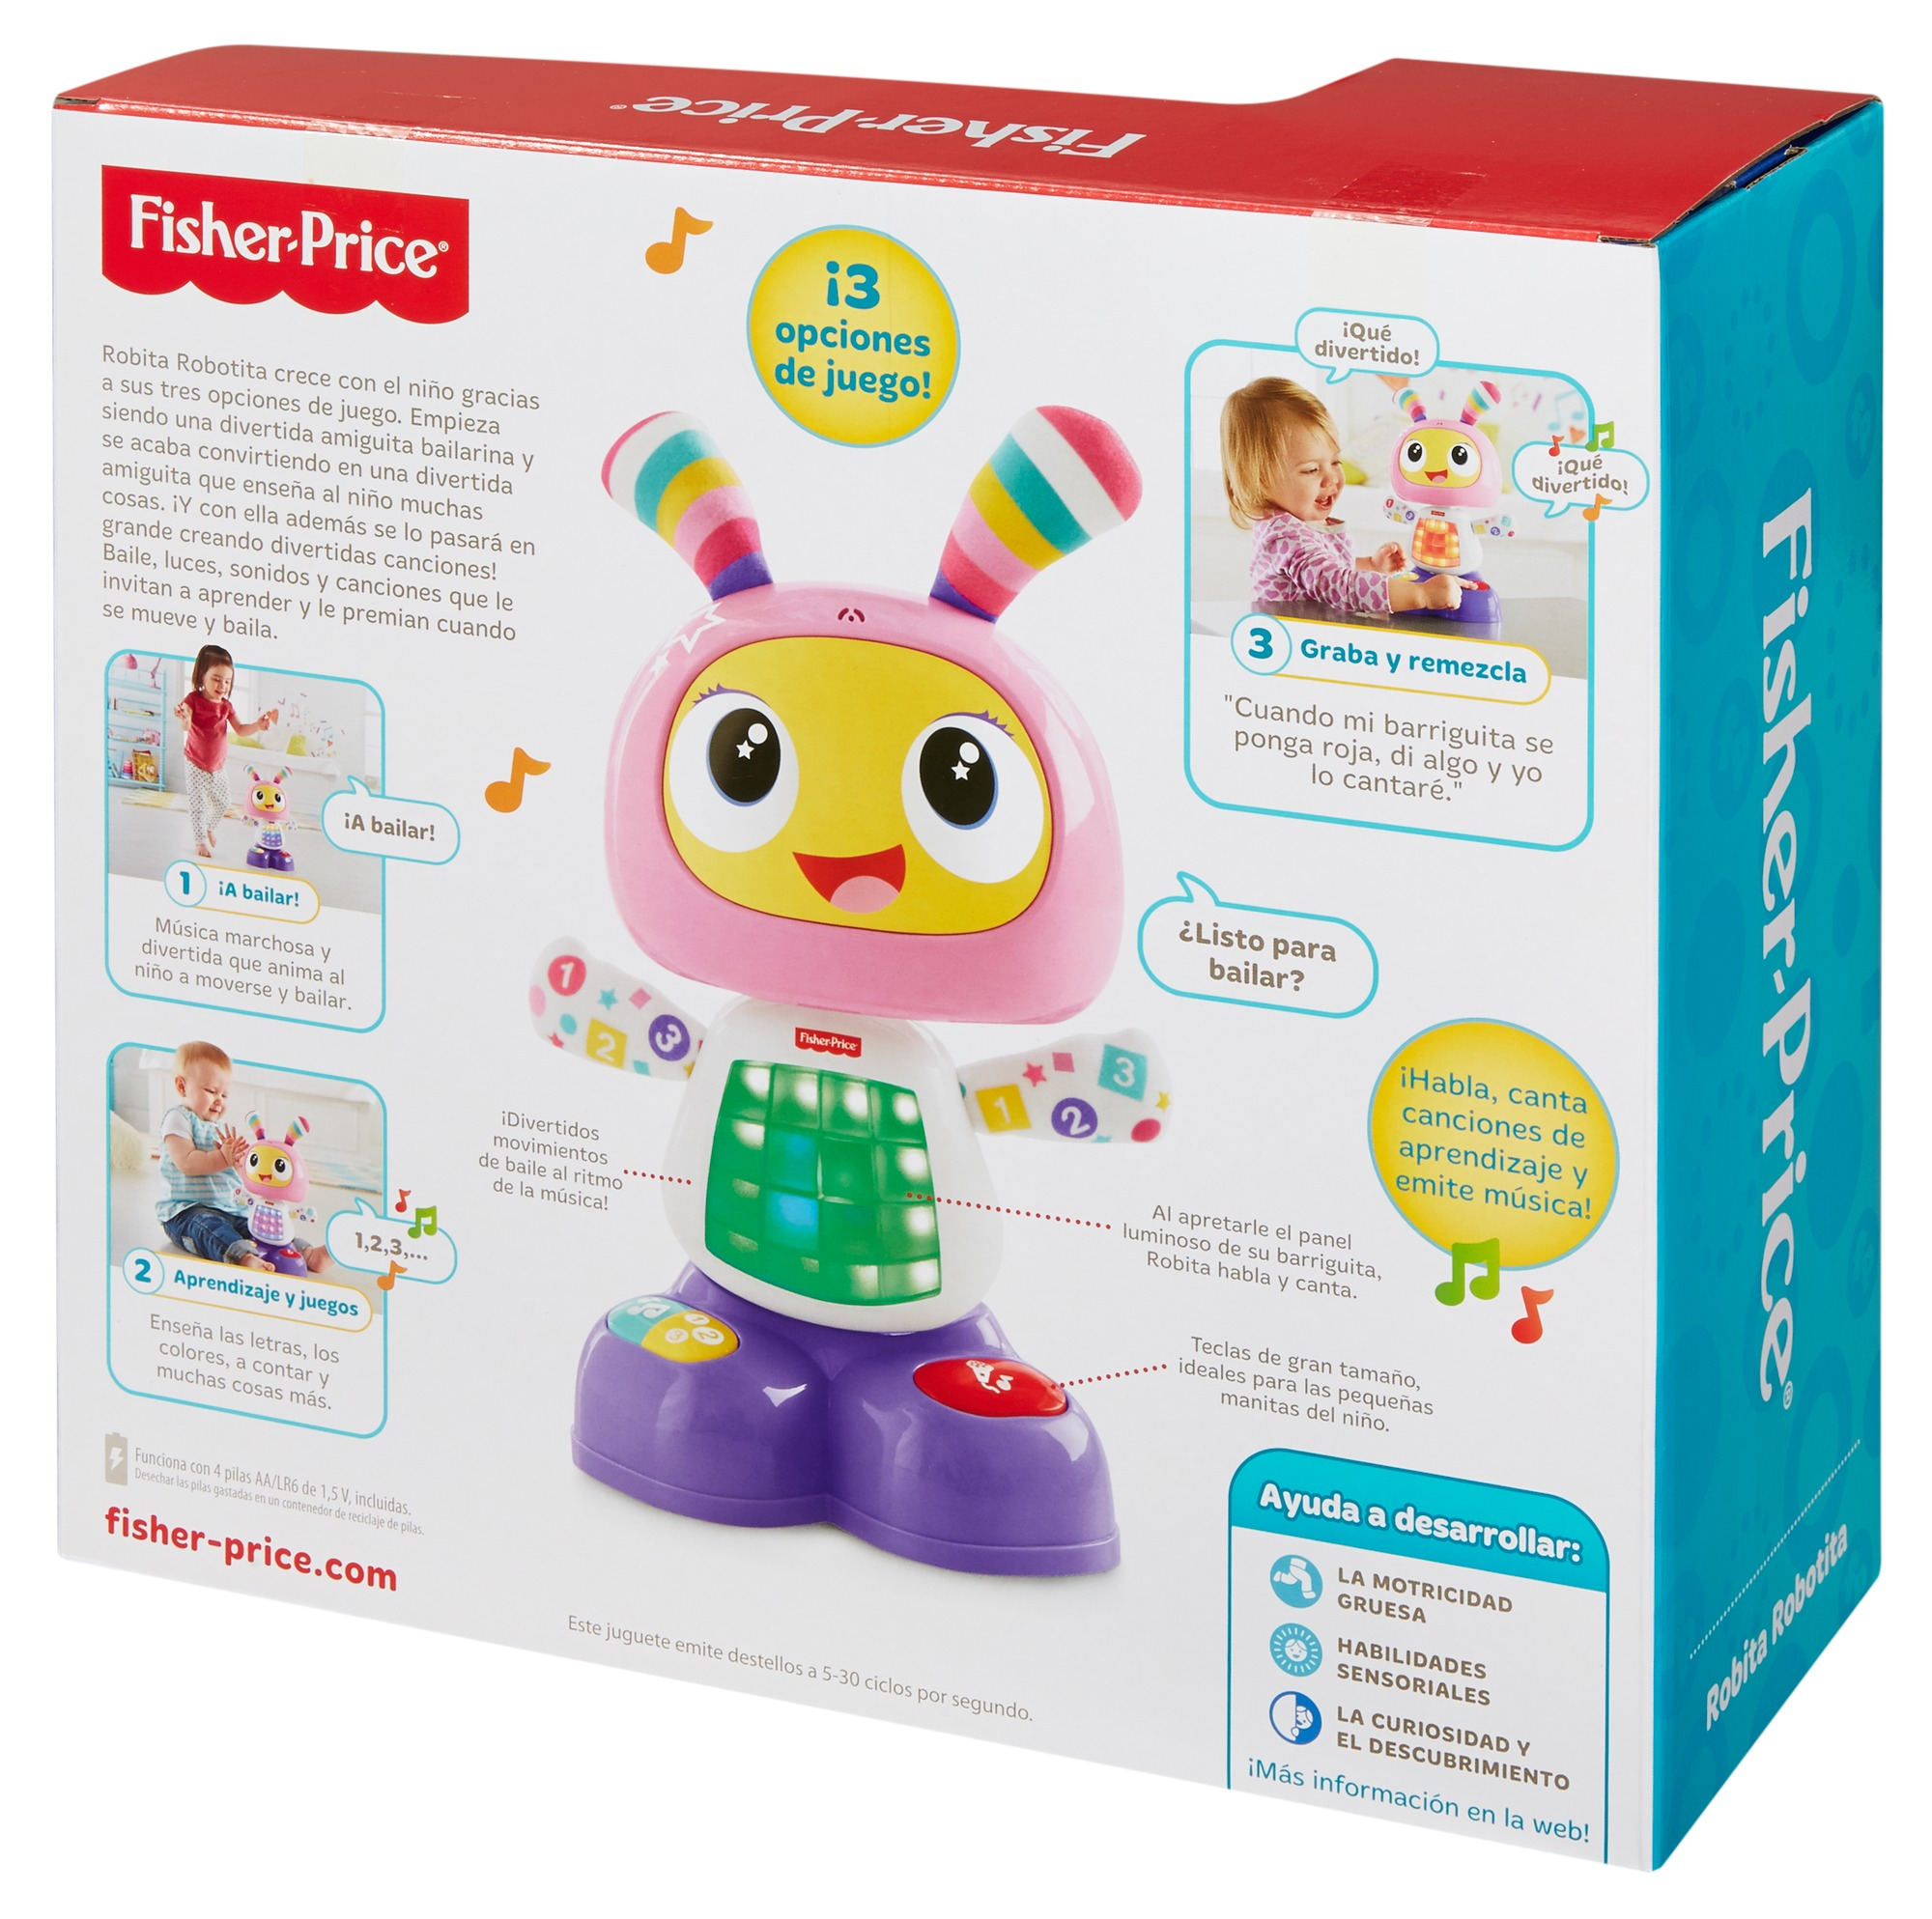 Fisher-Price Robot interactivo Robita